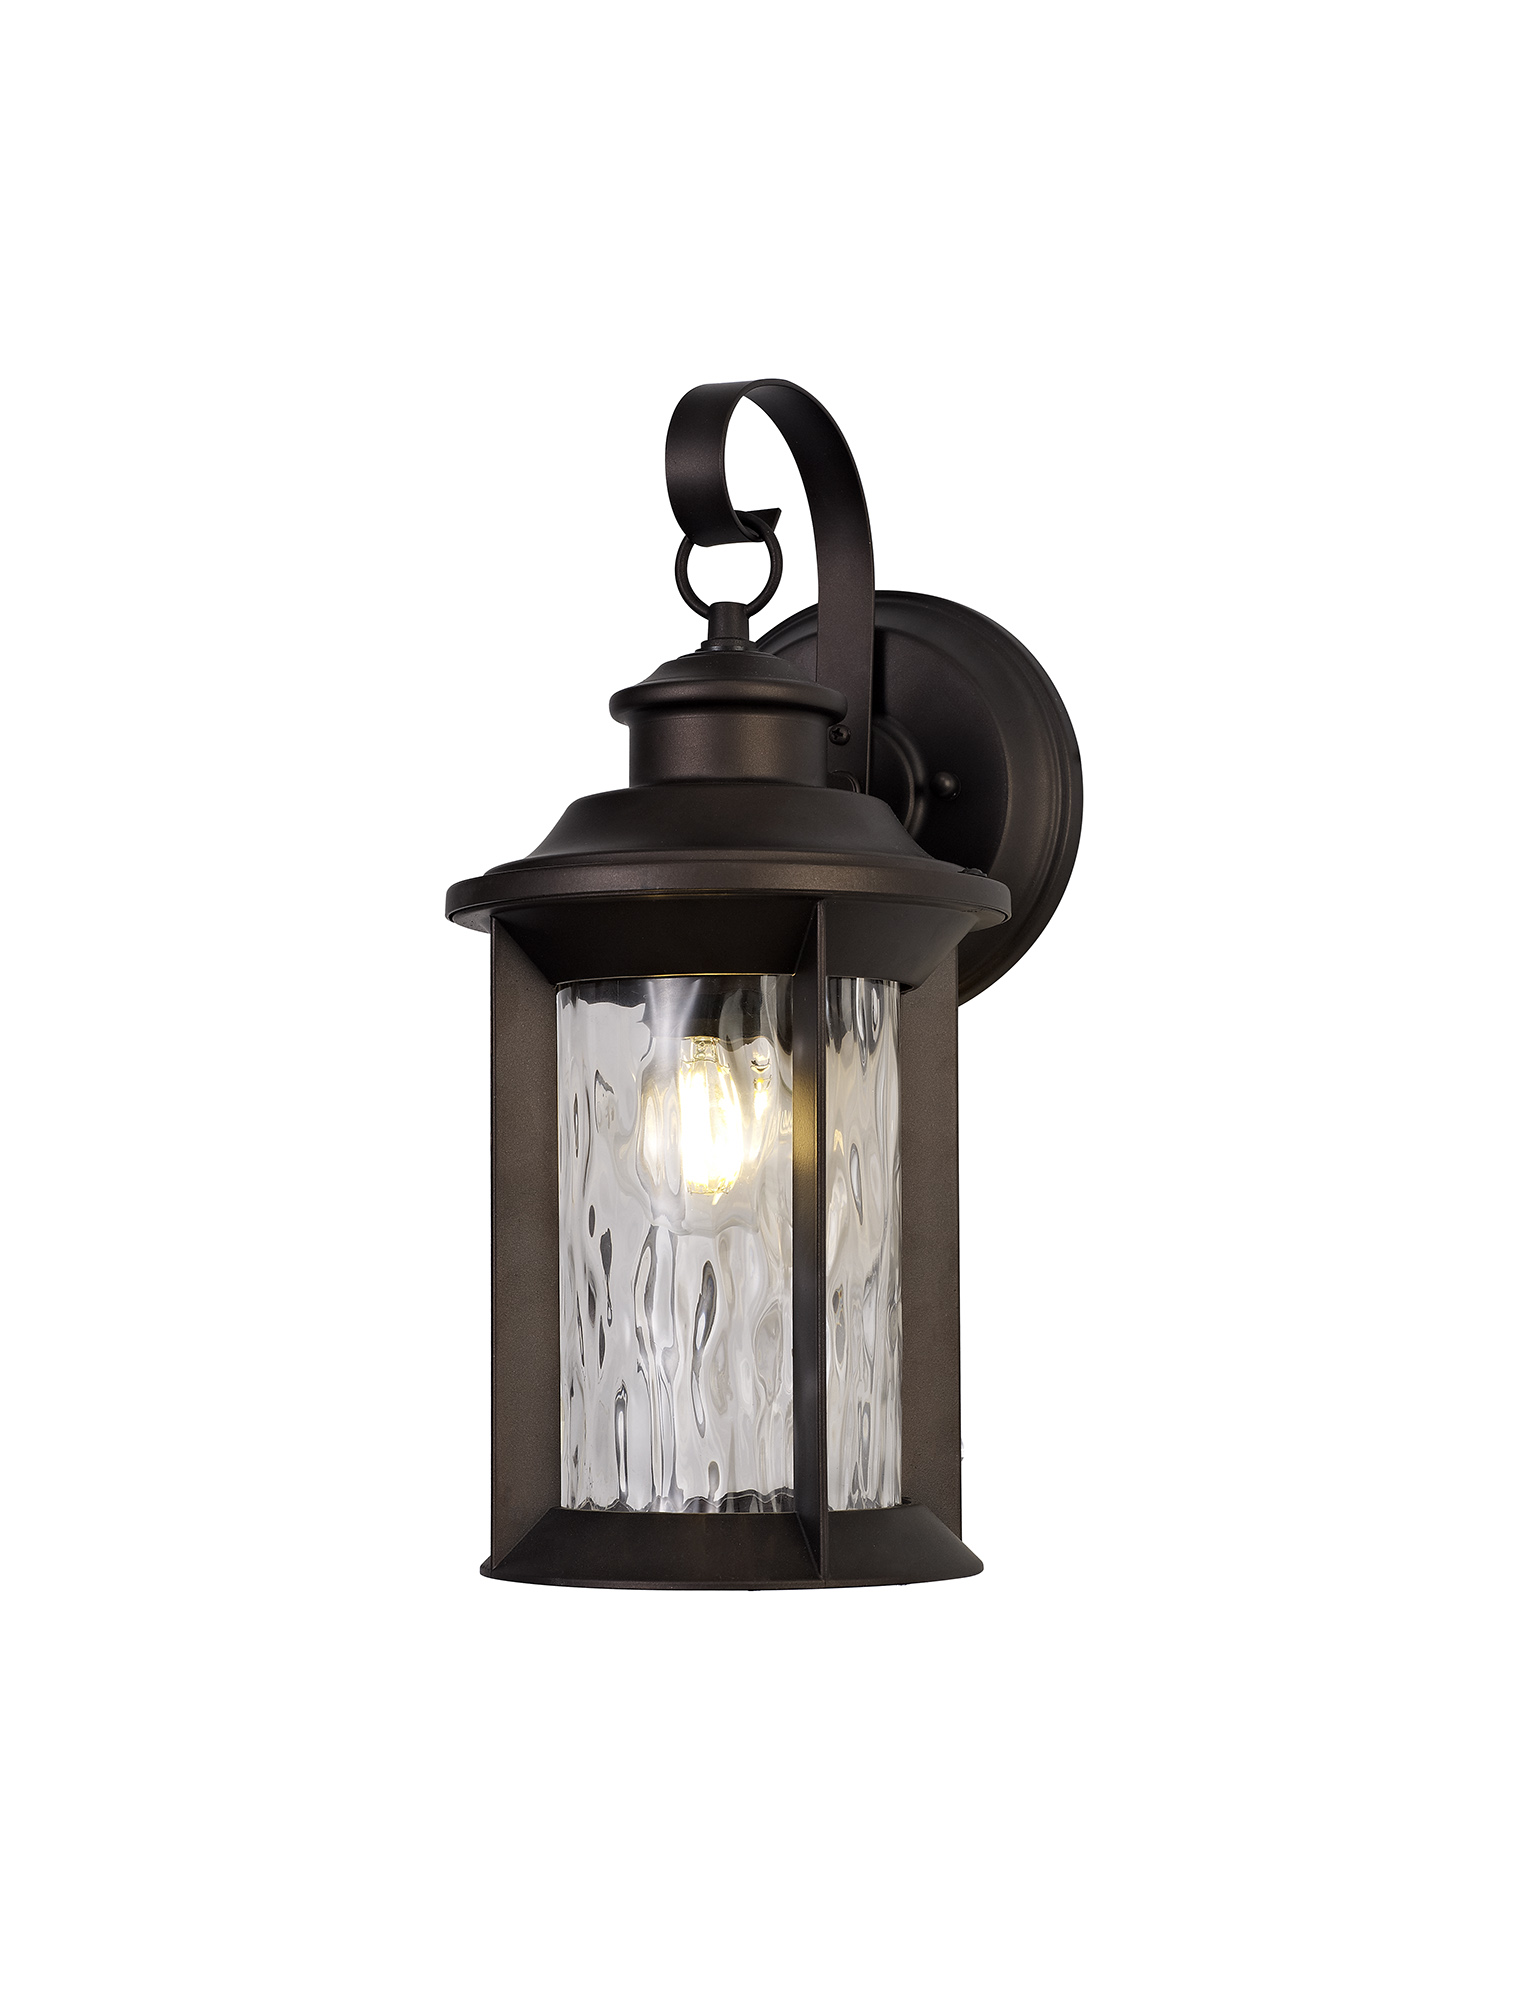 Small Wall Lamp, 1 x E27, Antique Bronze/Clear Ripple Glass, IP54, 2yrs Warranty